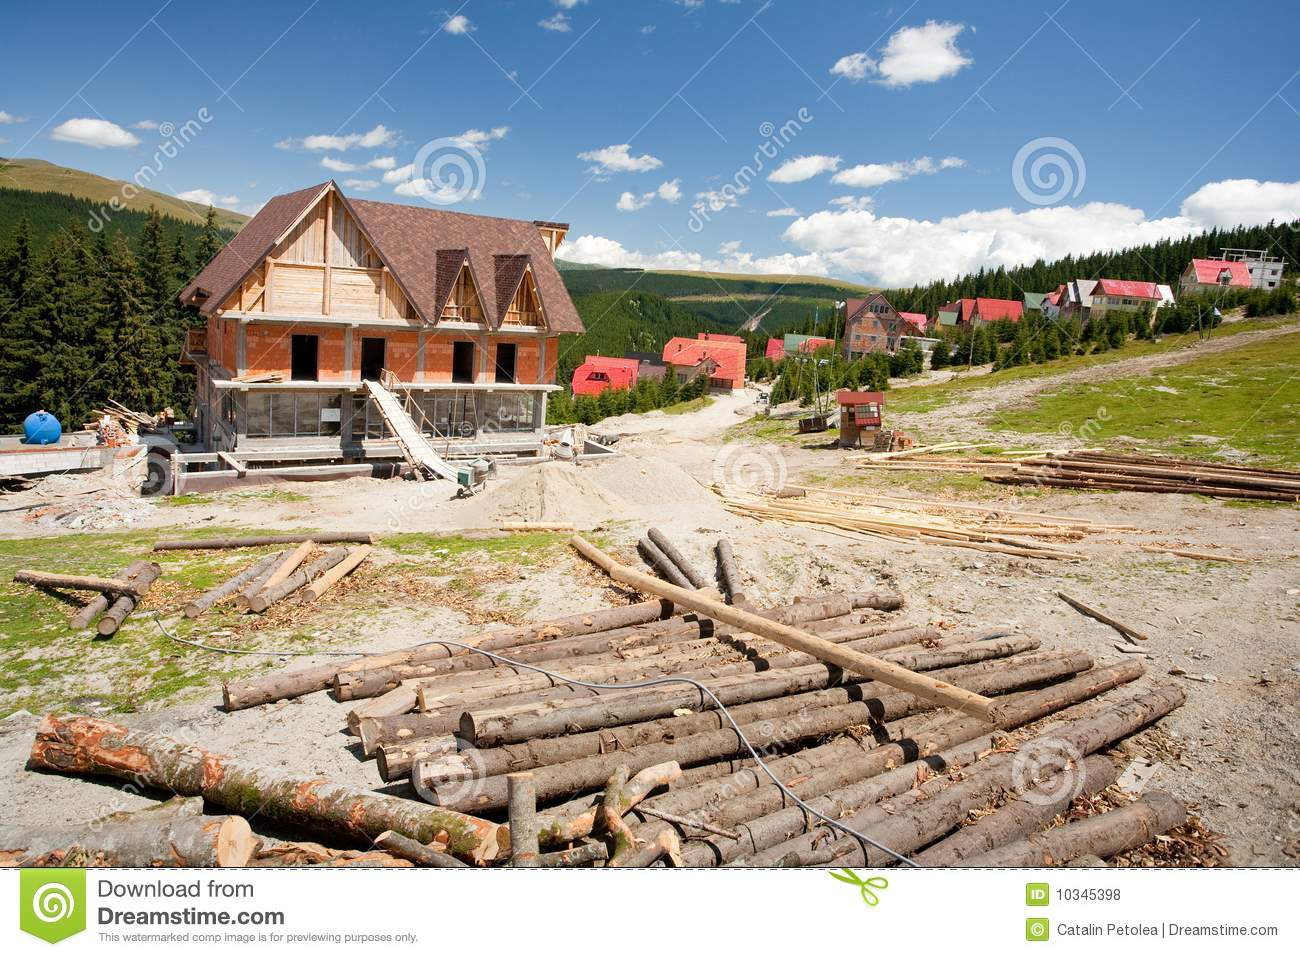 Building A House In Mountains Royalty Free Stock Photos